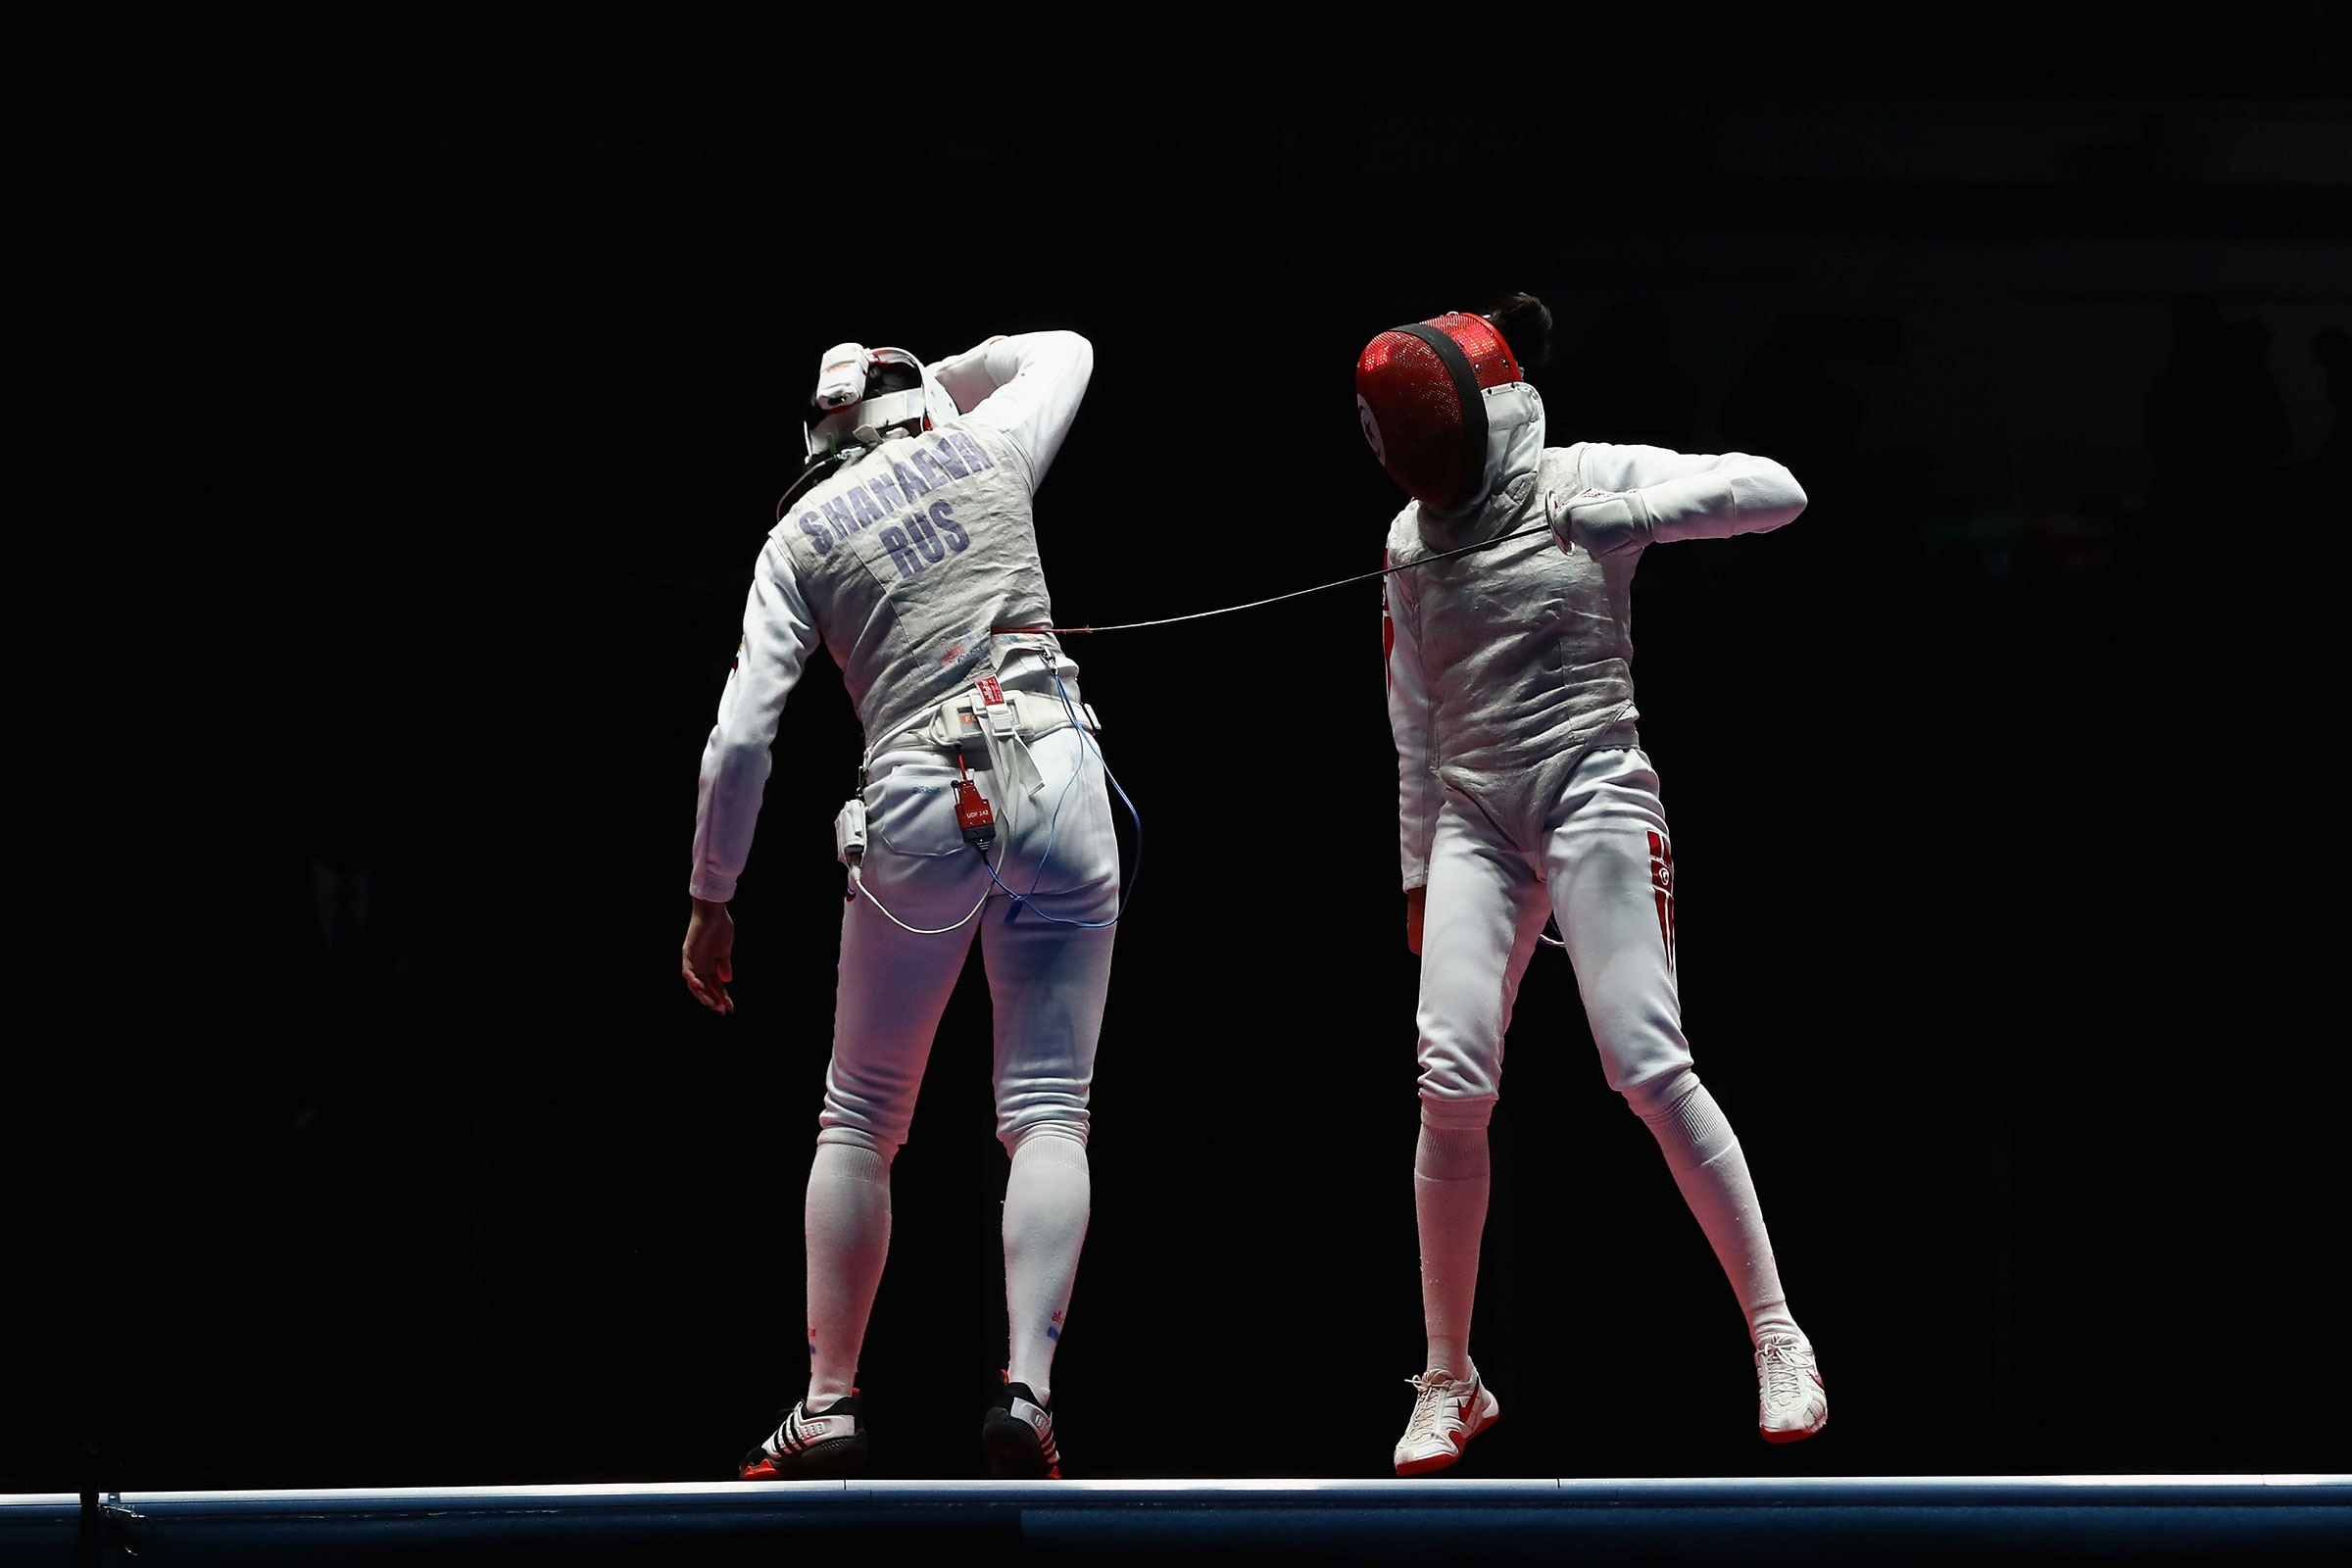 Fencing - Women's Foil Individual - Bronze Medal